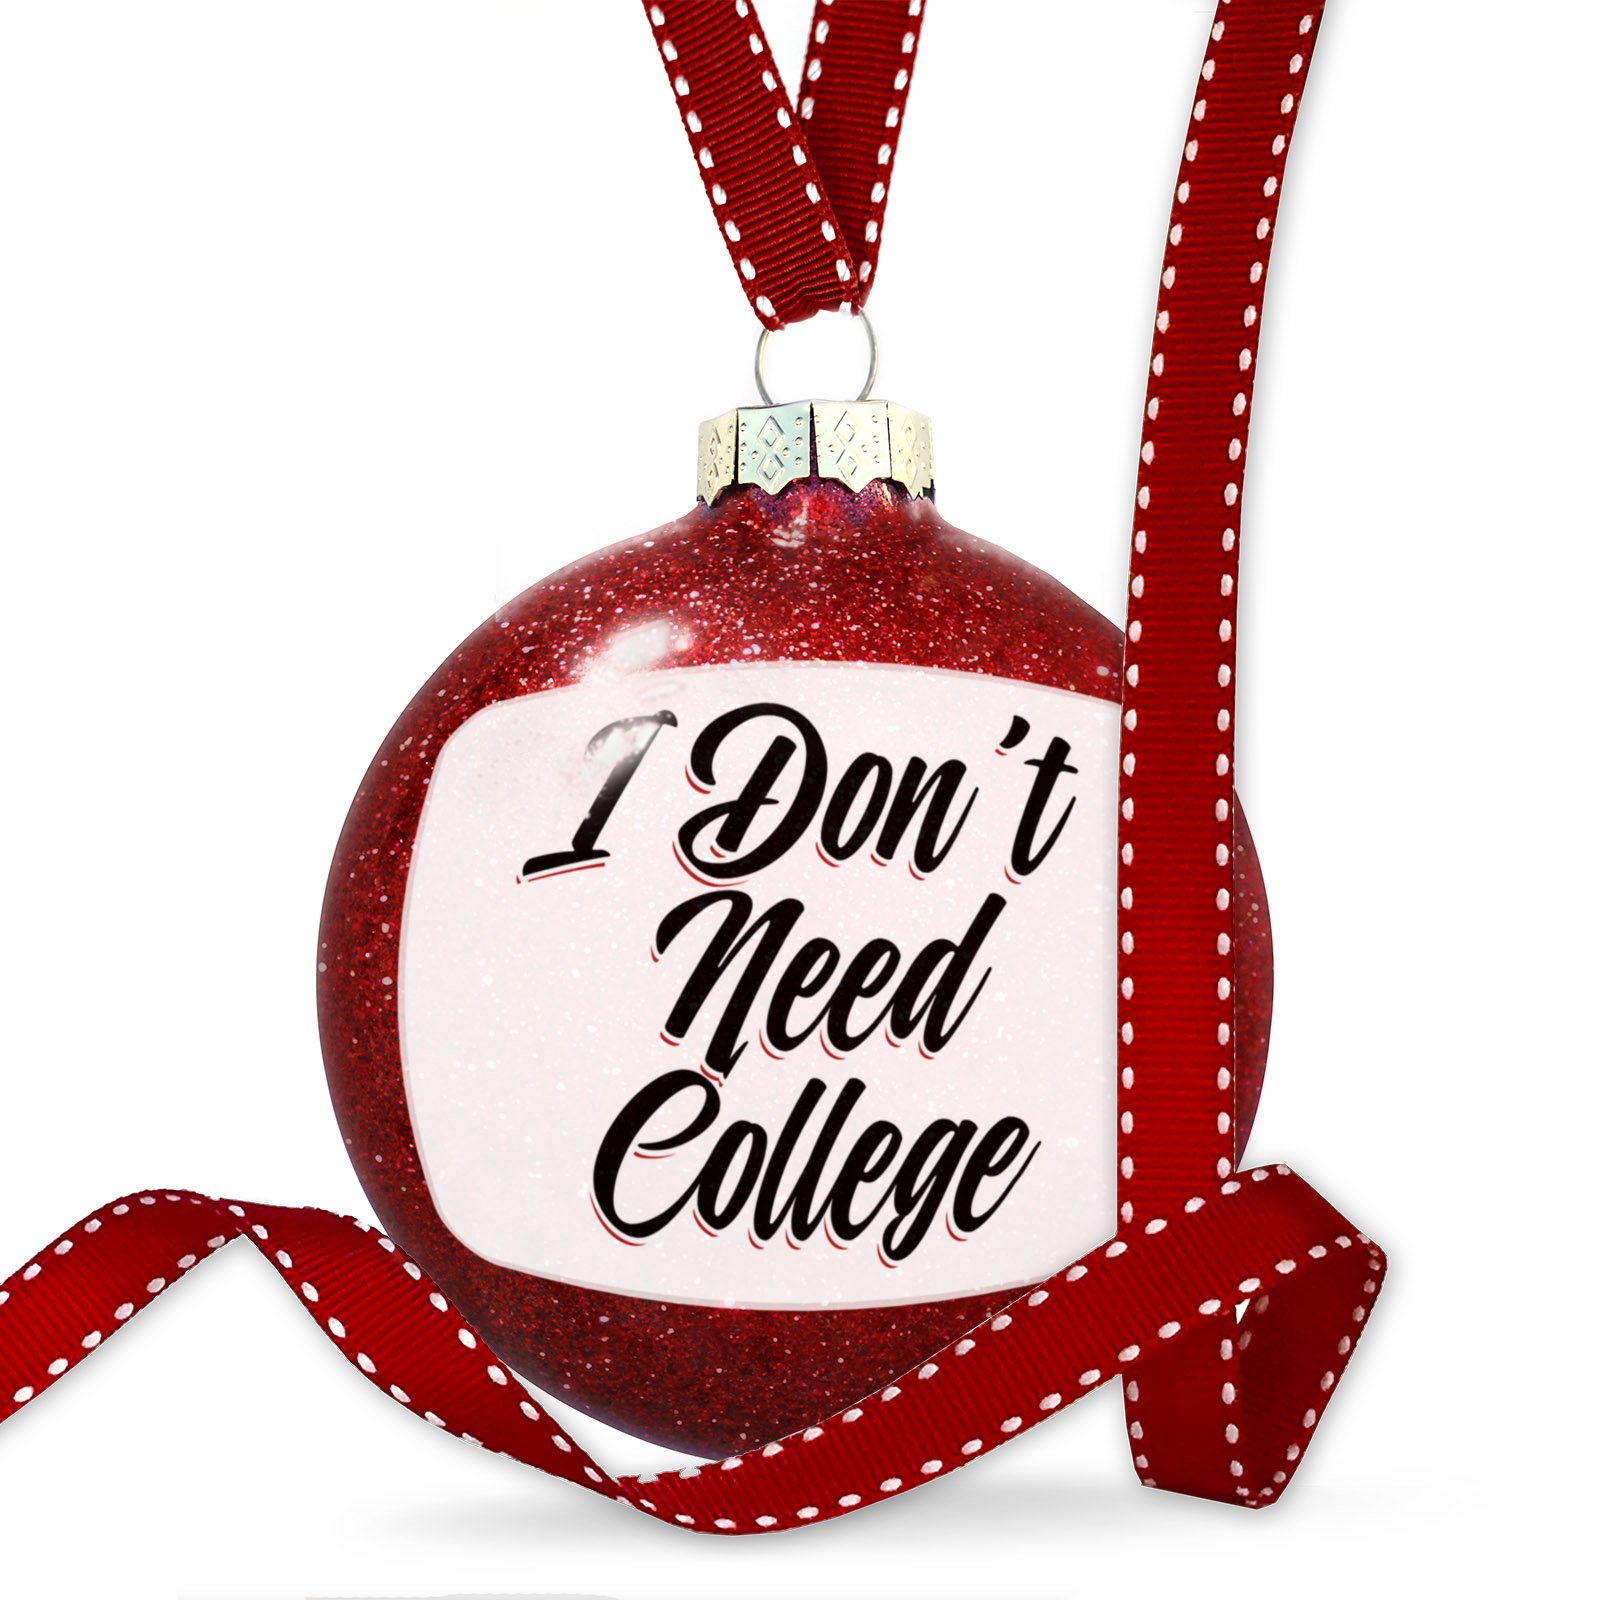 Christmas Decoration Vintage Lettering I Don't Need College Ornament